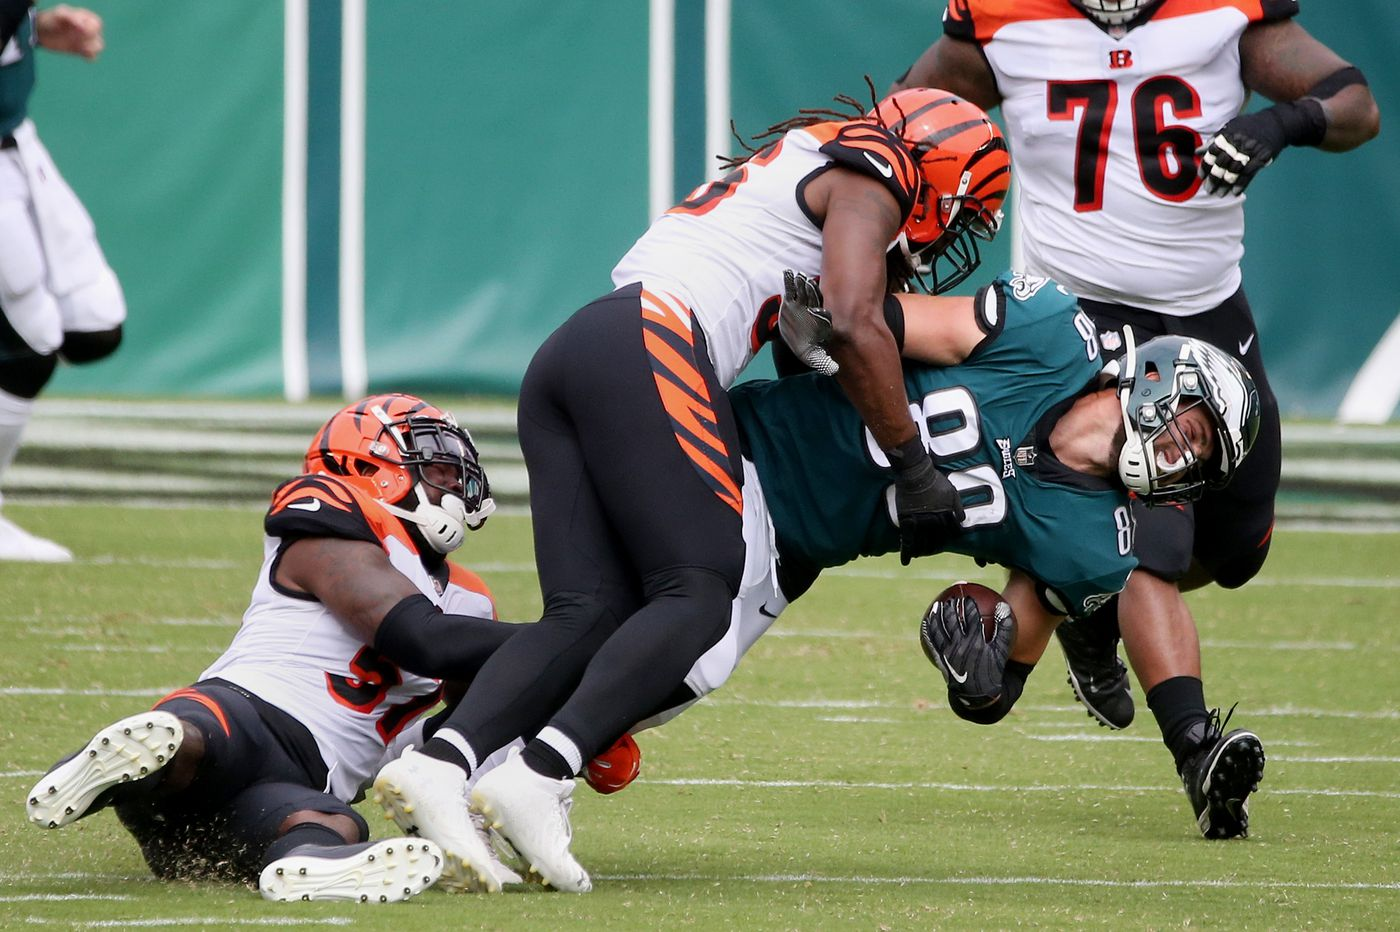 Dallas Goedert's injury crippled the Eagles vs. Bengals in Sunday's 23-23 tie